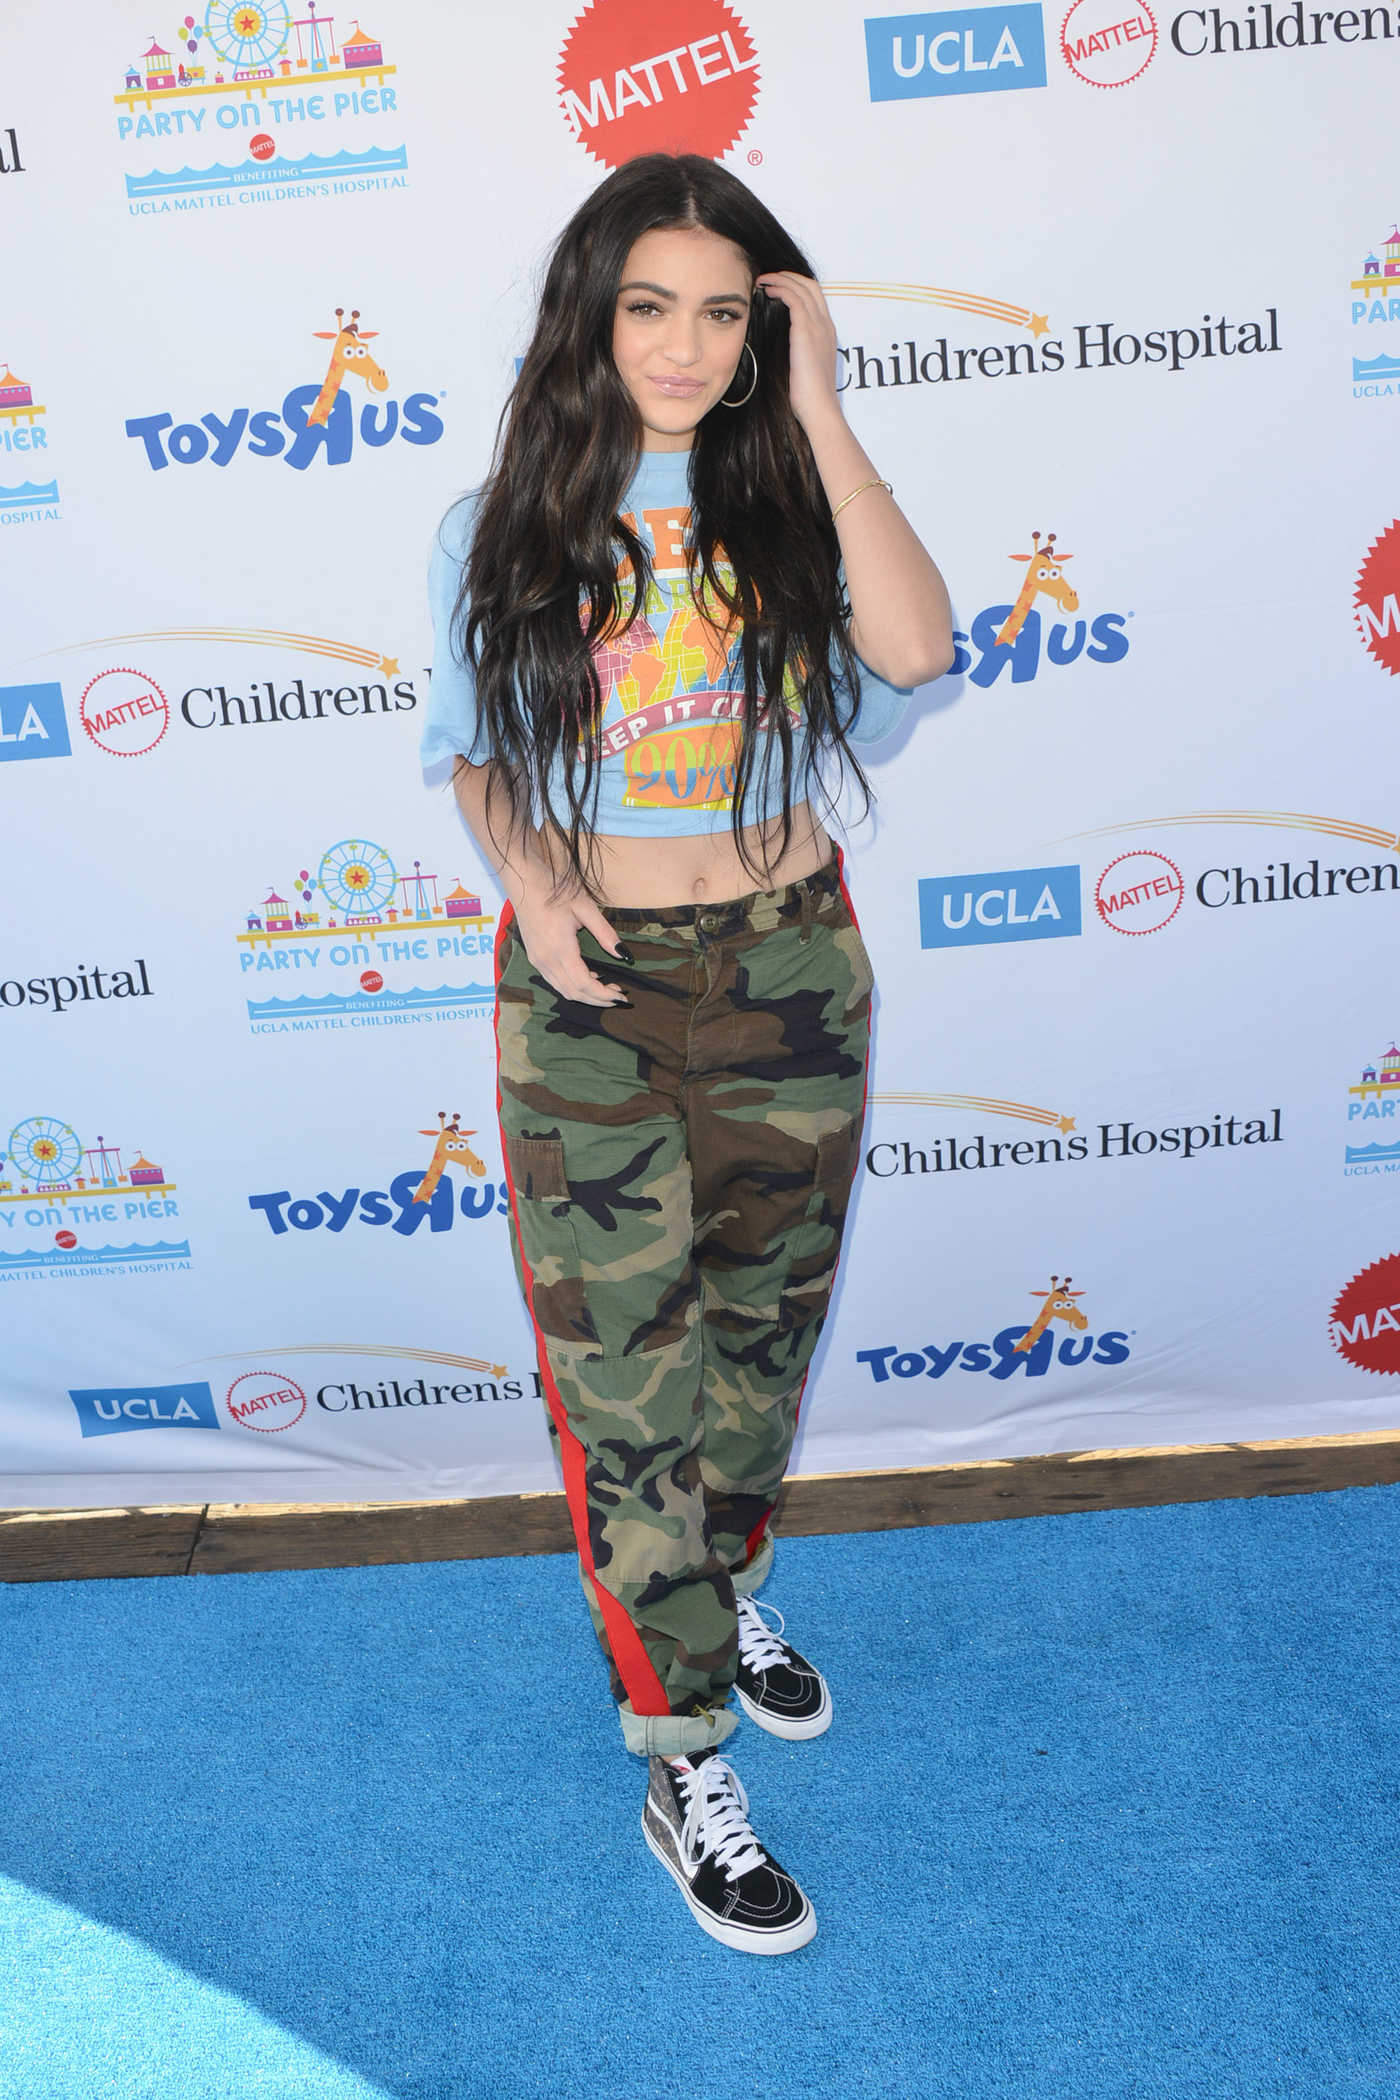 Luna Blaise at the 18th Annual Mattel Party on the Pier in Santa Monica 11/05/2017